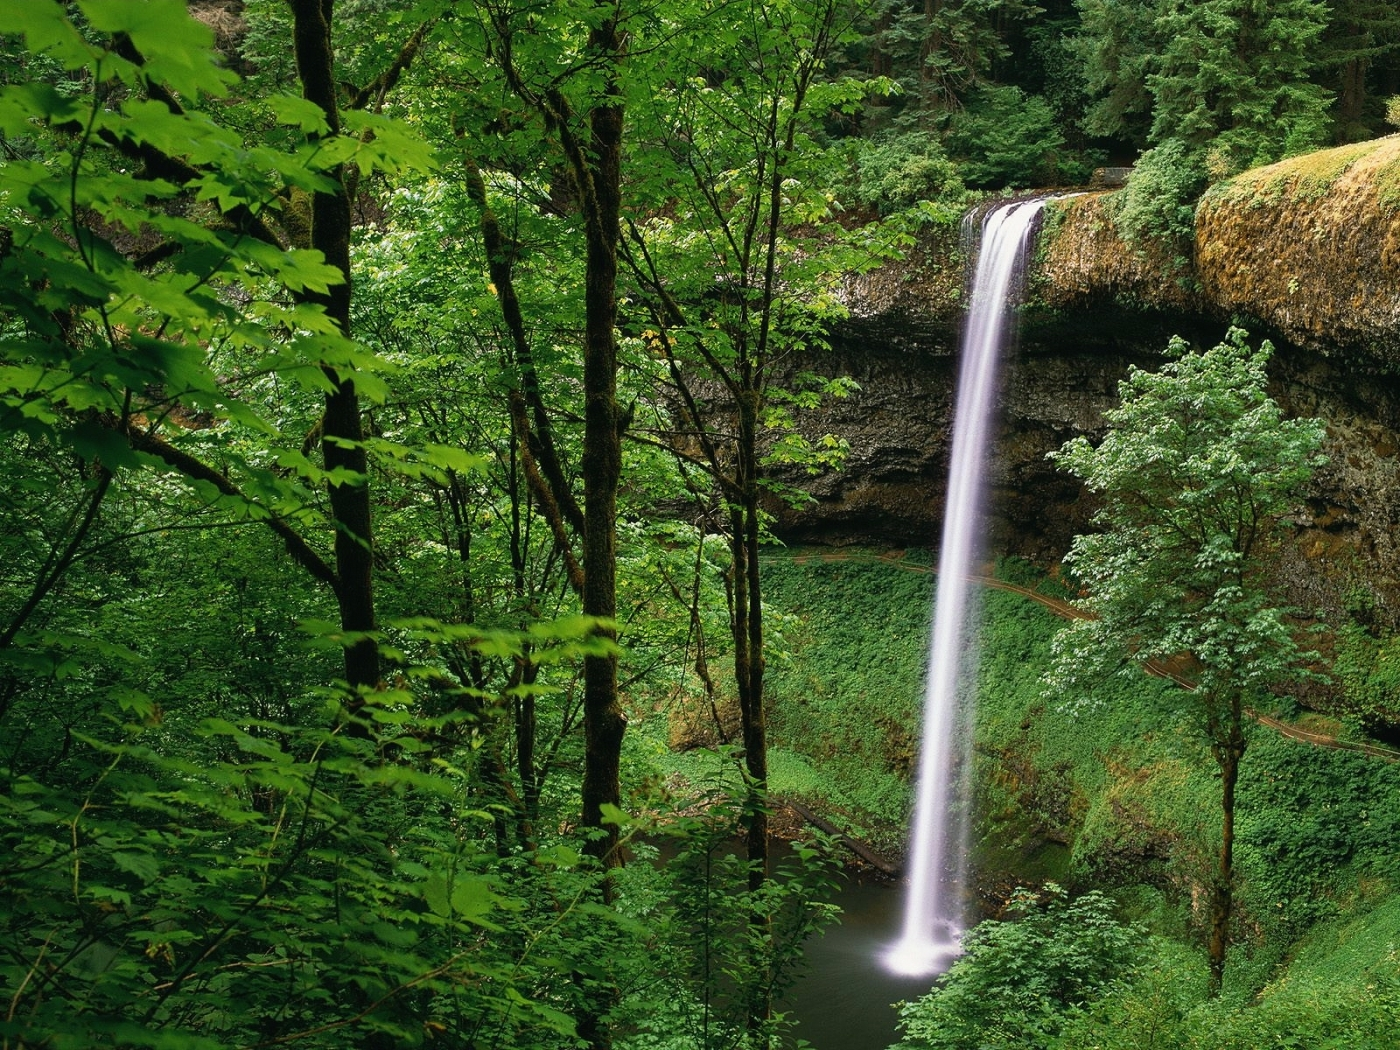 29649 download wallpaper Landscape, Waterfalls screensavers and pictures for free